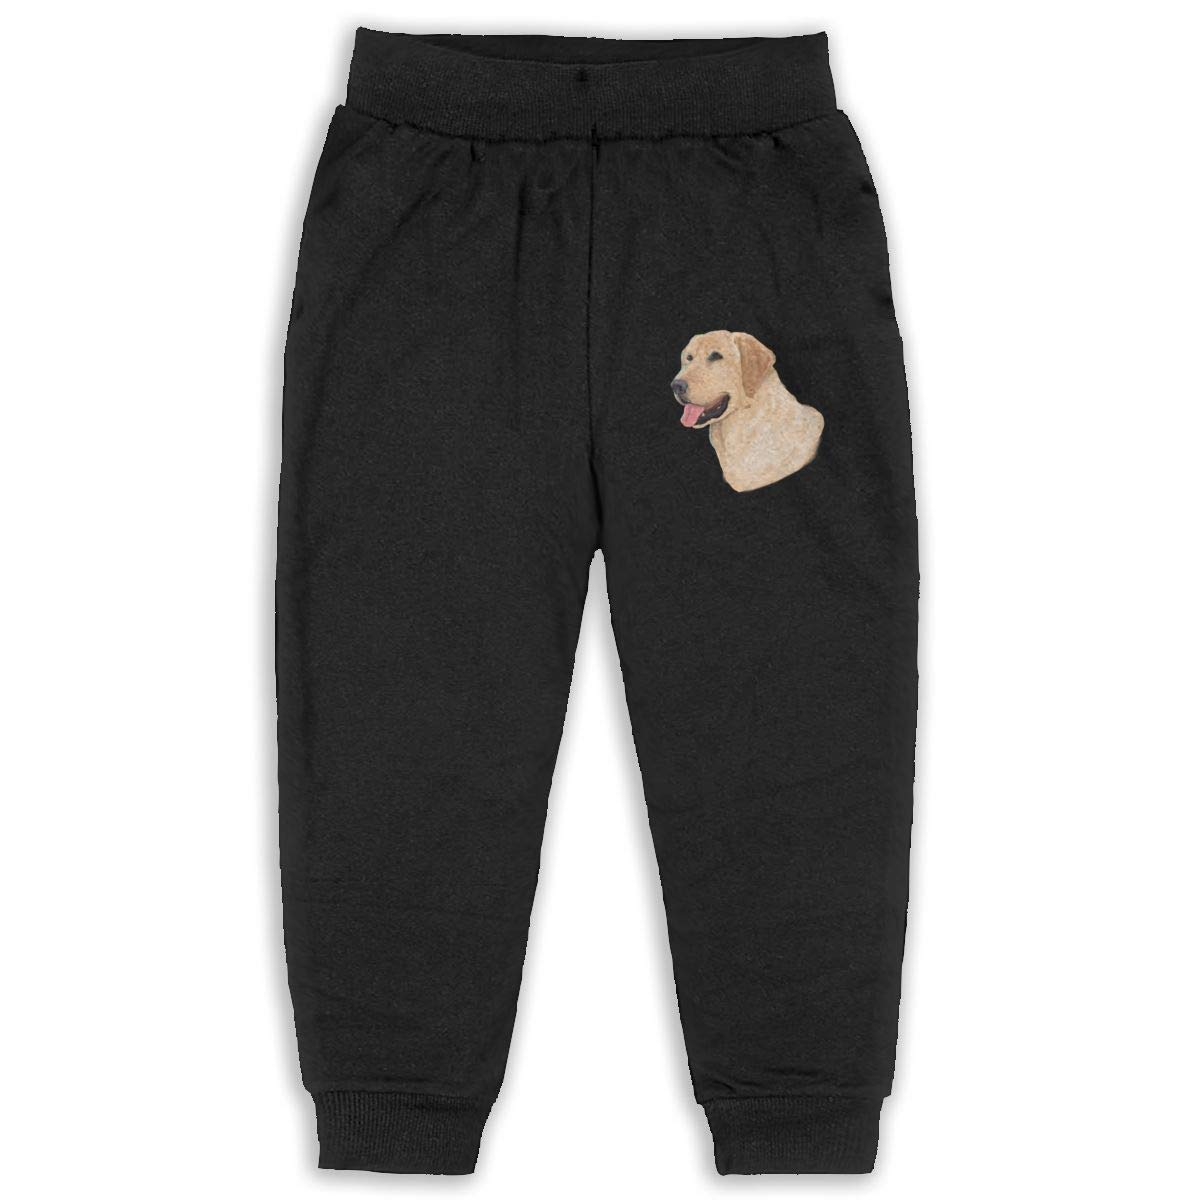 DaXi1 Labrador Retriever Sweatpants for Boys /& Girls Fleece Active Joggers Elastic Pants